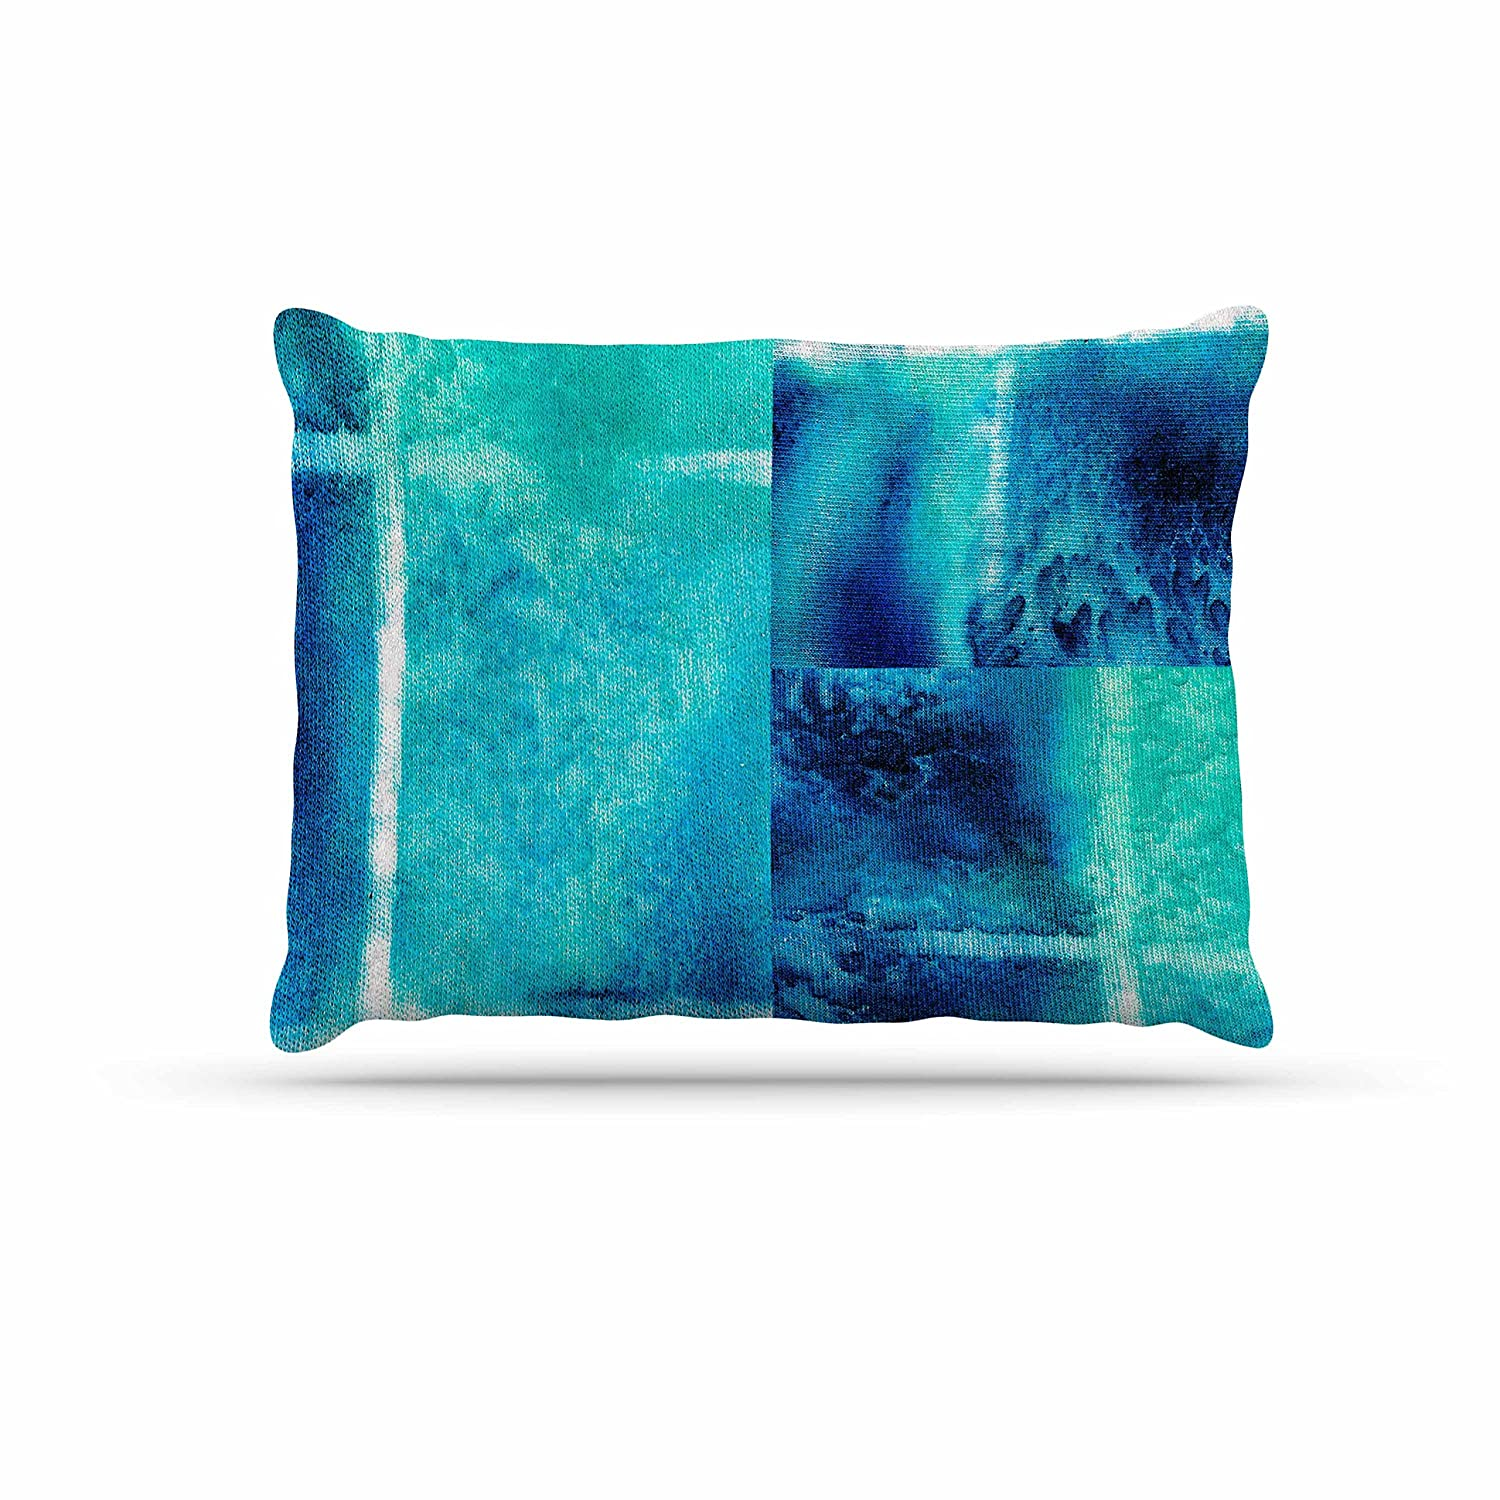 Kess InHouse Nina May Saltwater Study  Teal bluee Fleece Dog Bed, 30 by 40